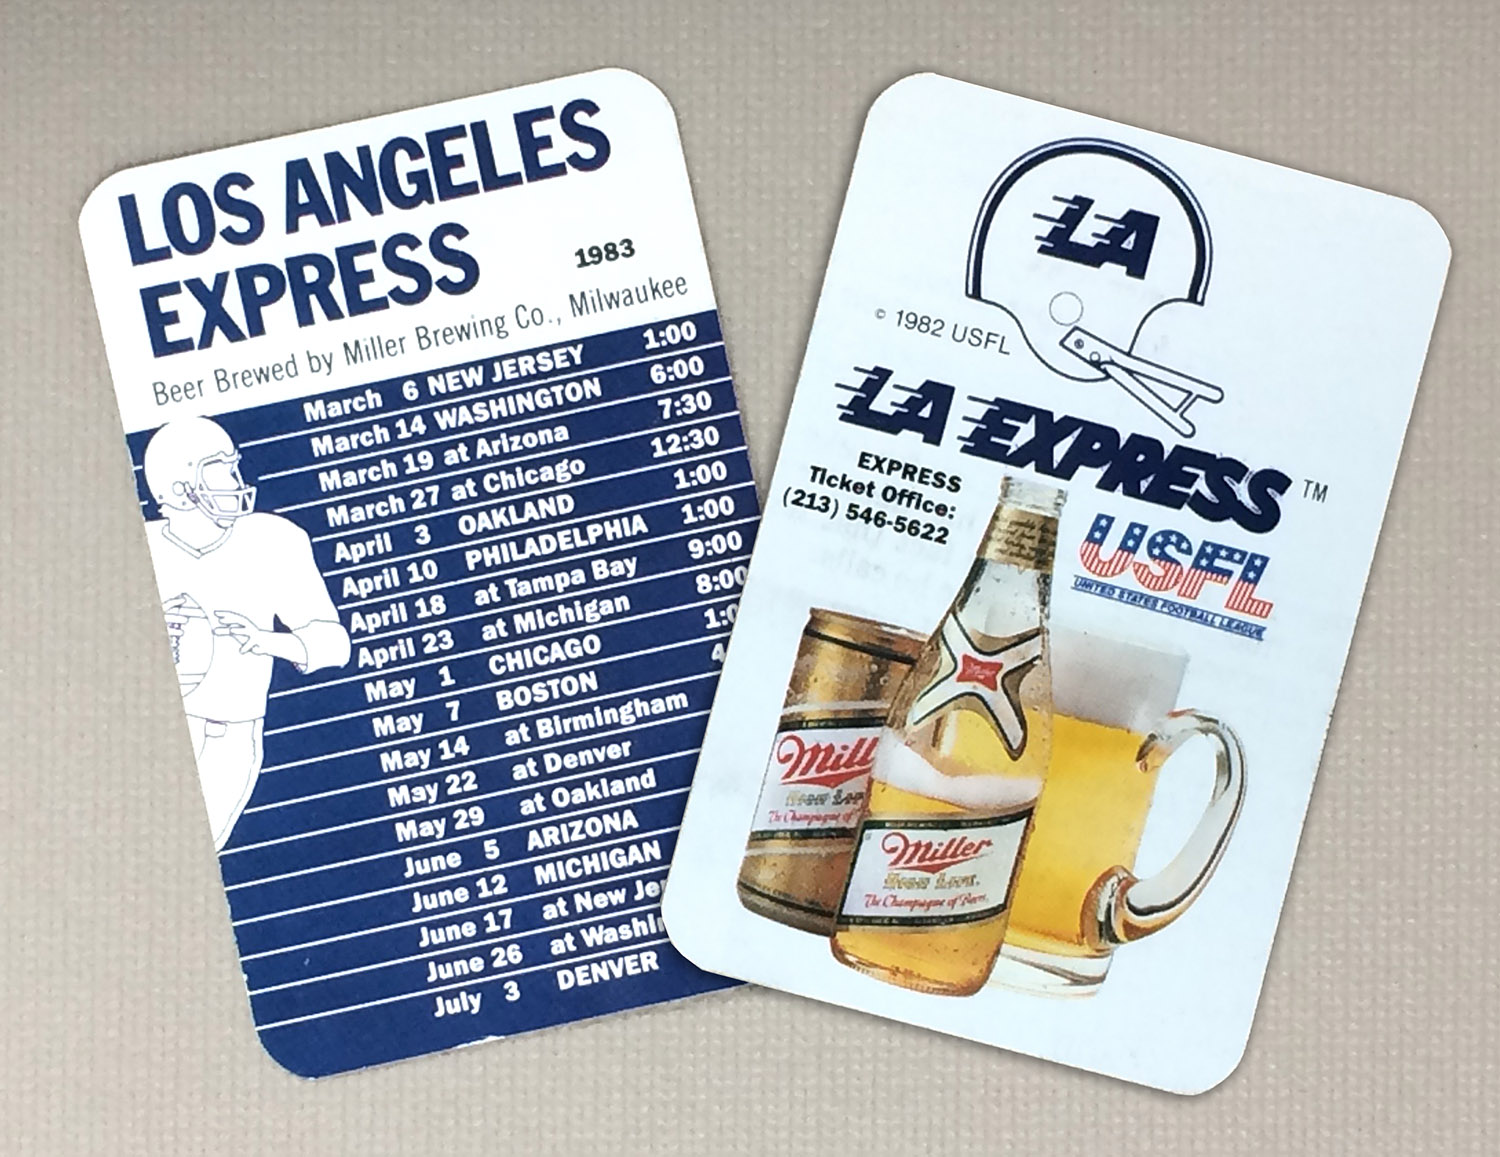 Los Angeles Express 1983 Schedule